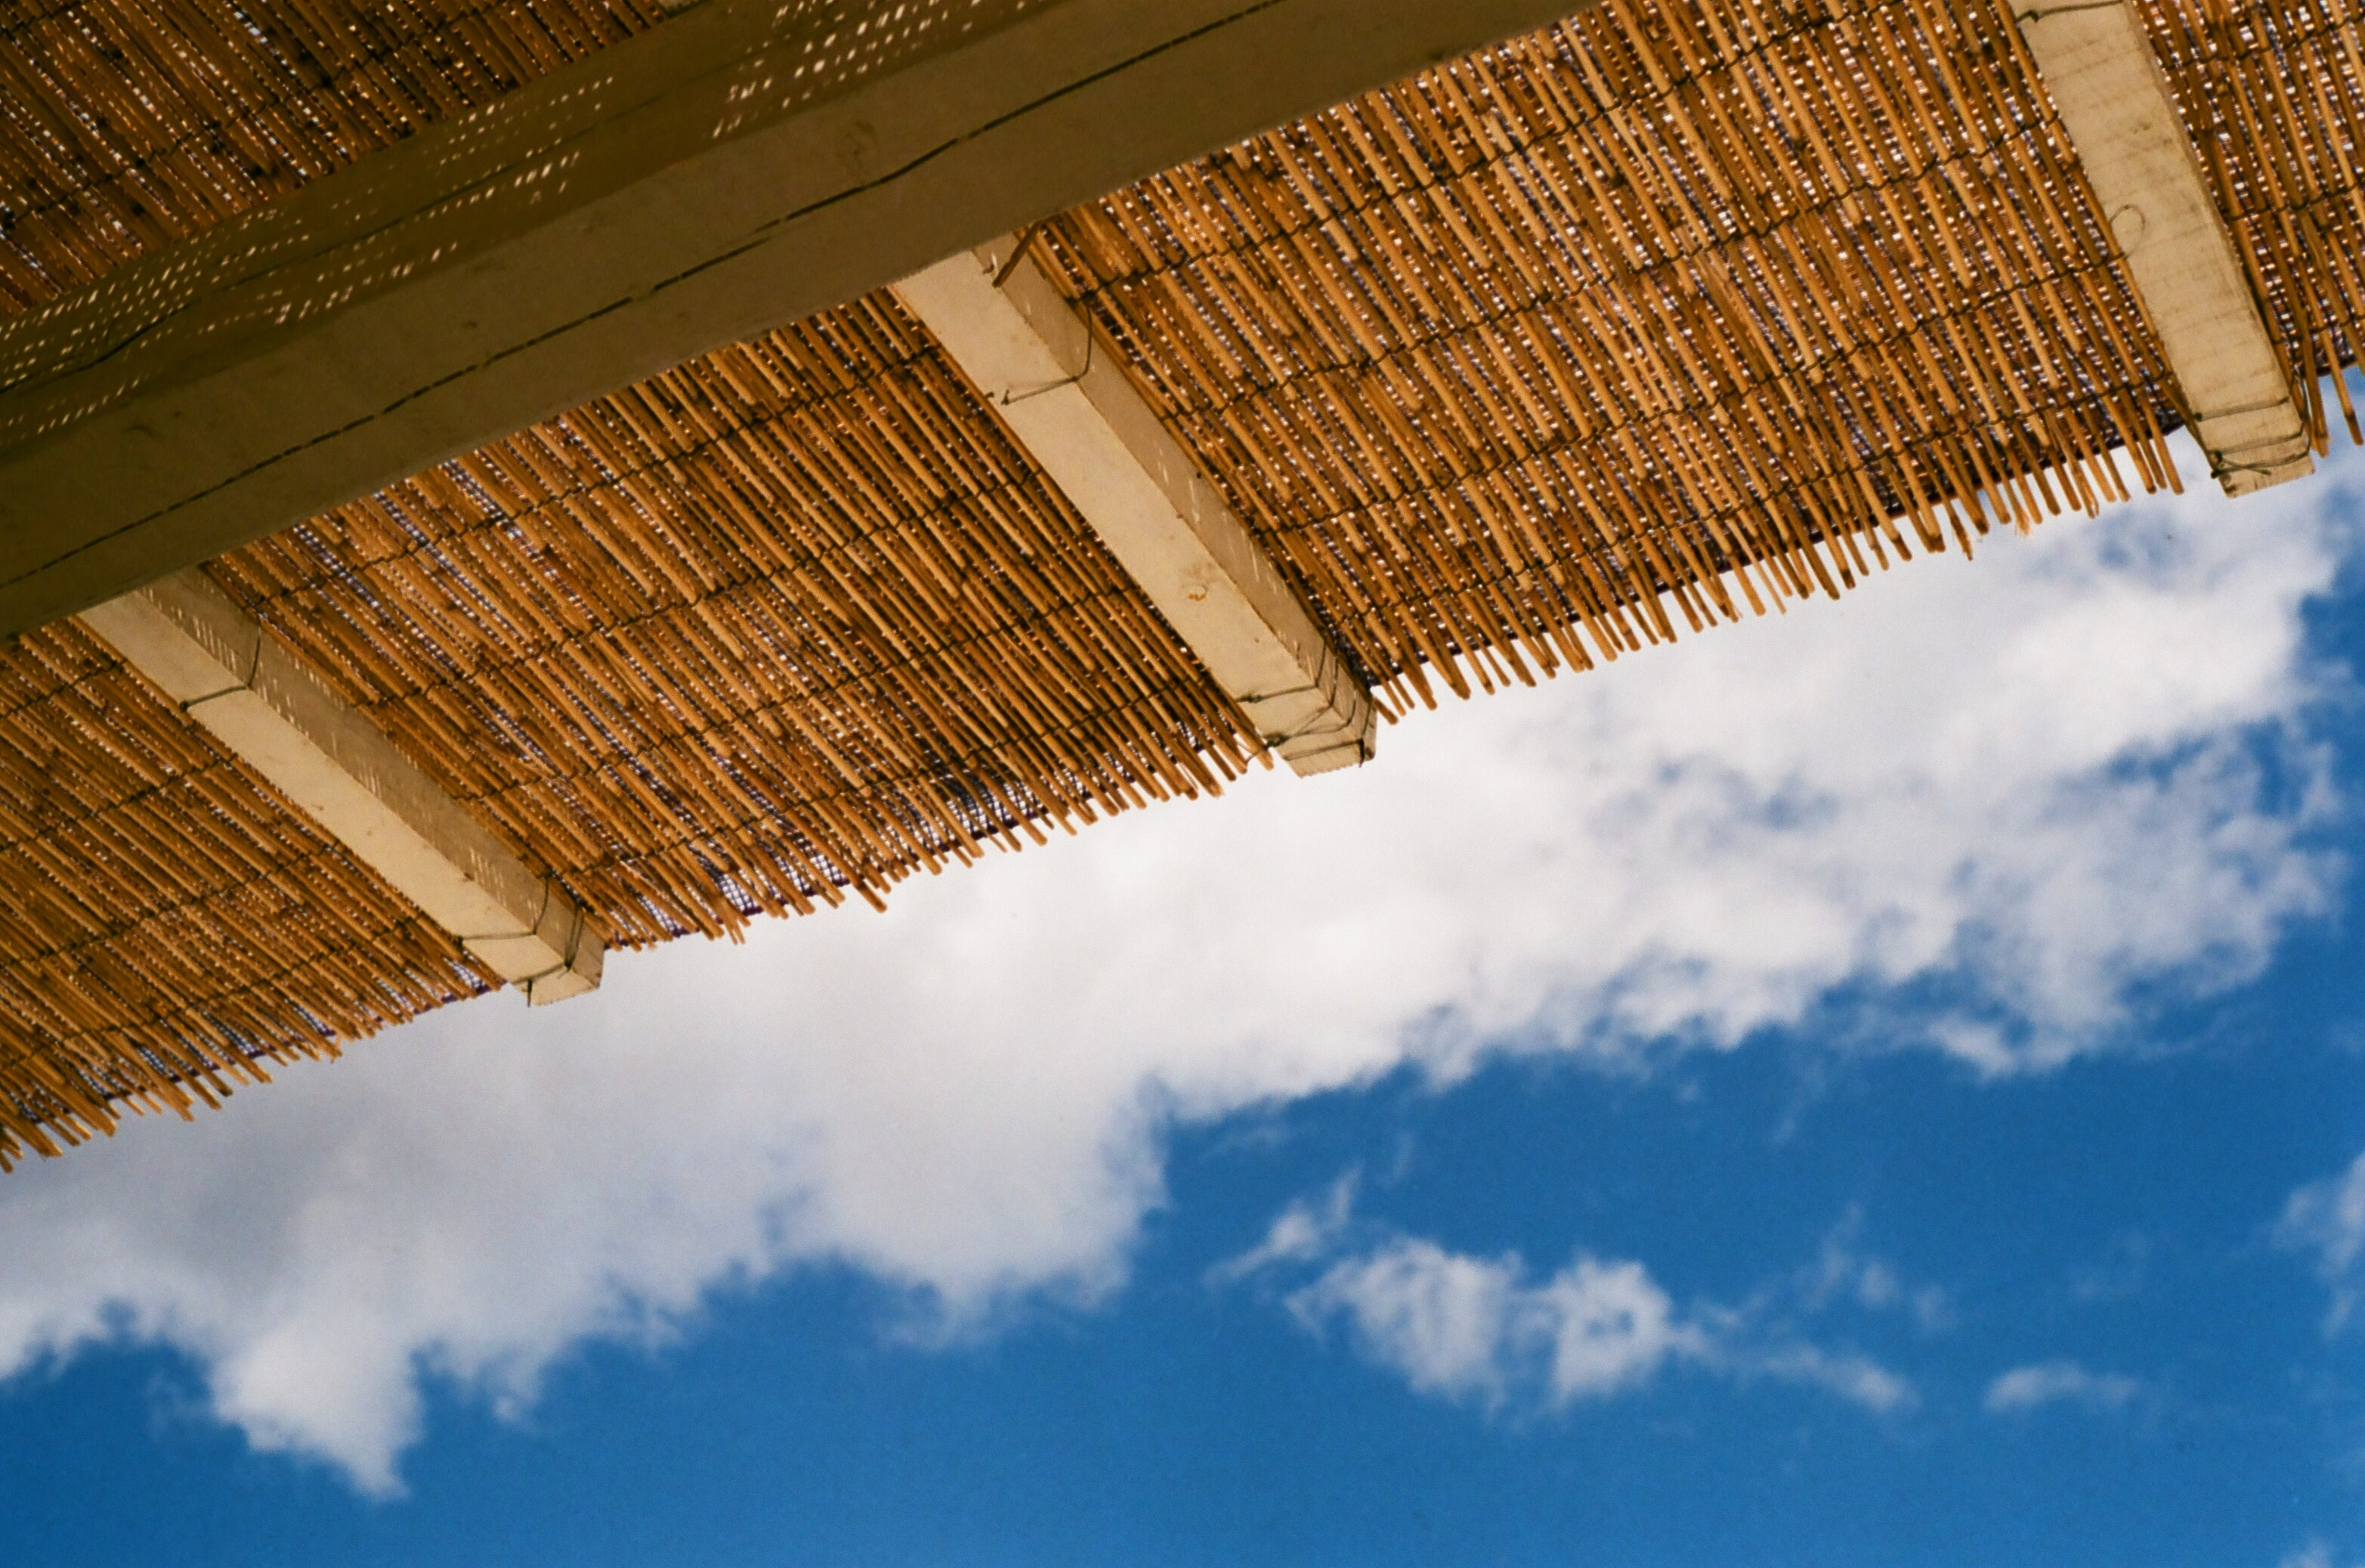 brown straw roof with brown wooden exposed beams under blue sky and white clouds at daytime